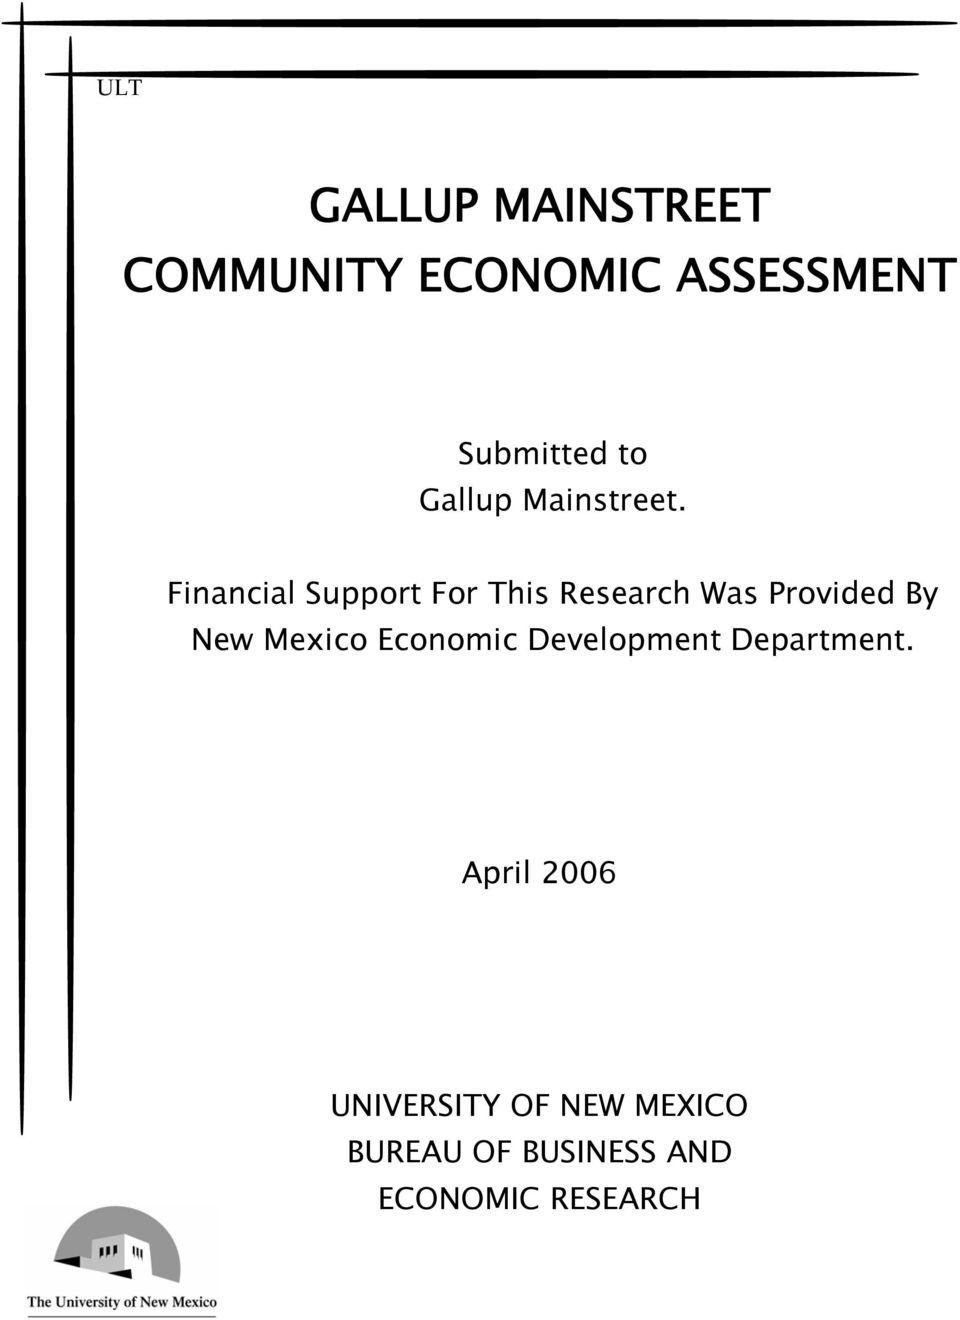 Financial Support For This Research Was Provided By New Mexico